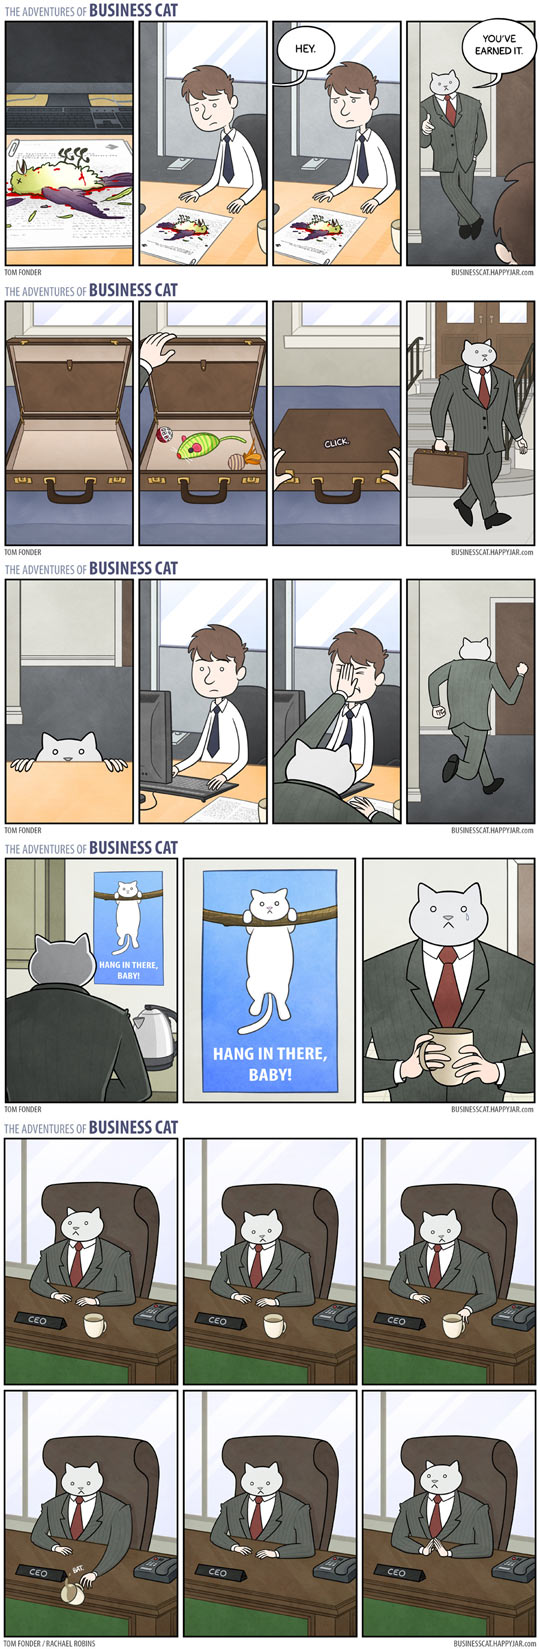 funny-webcomic-Business-cat-earning-treat